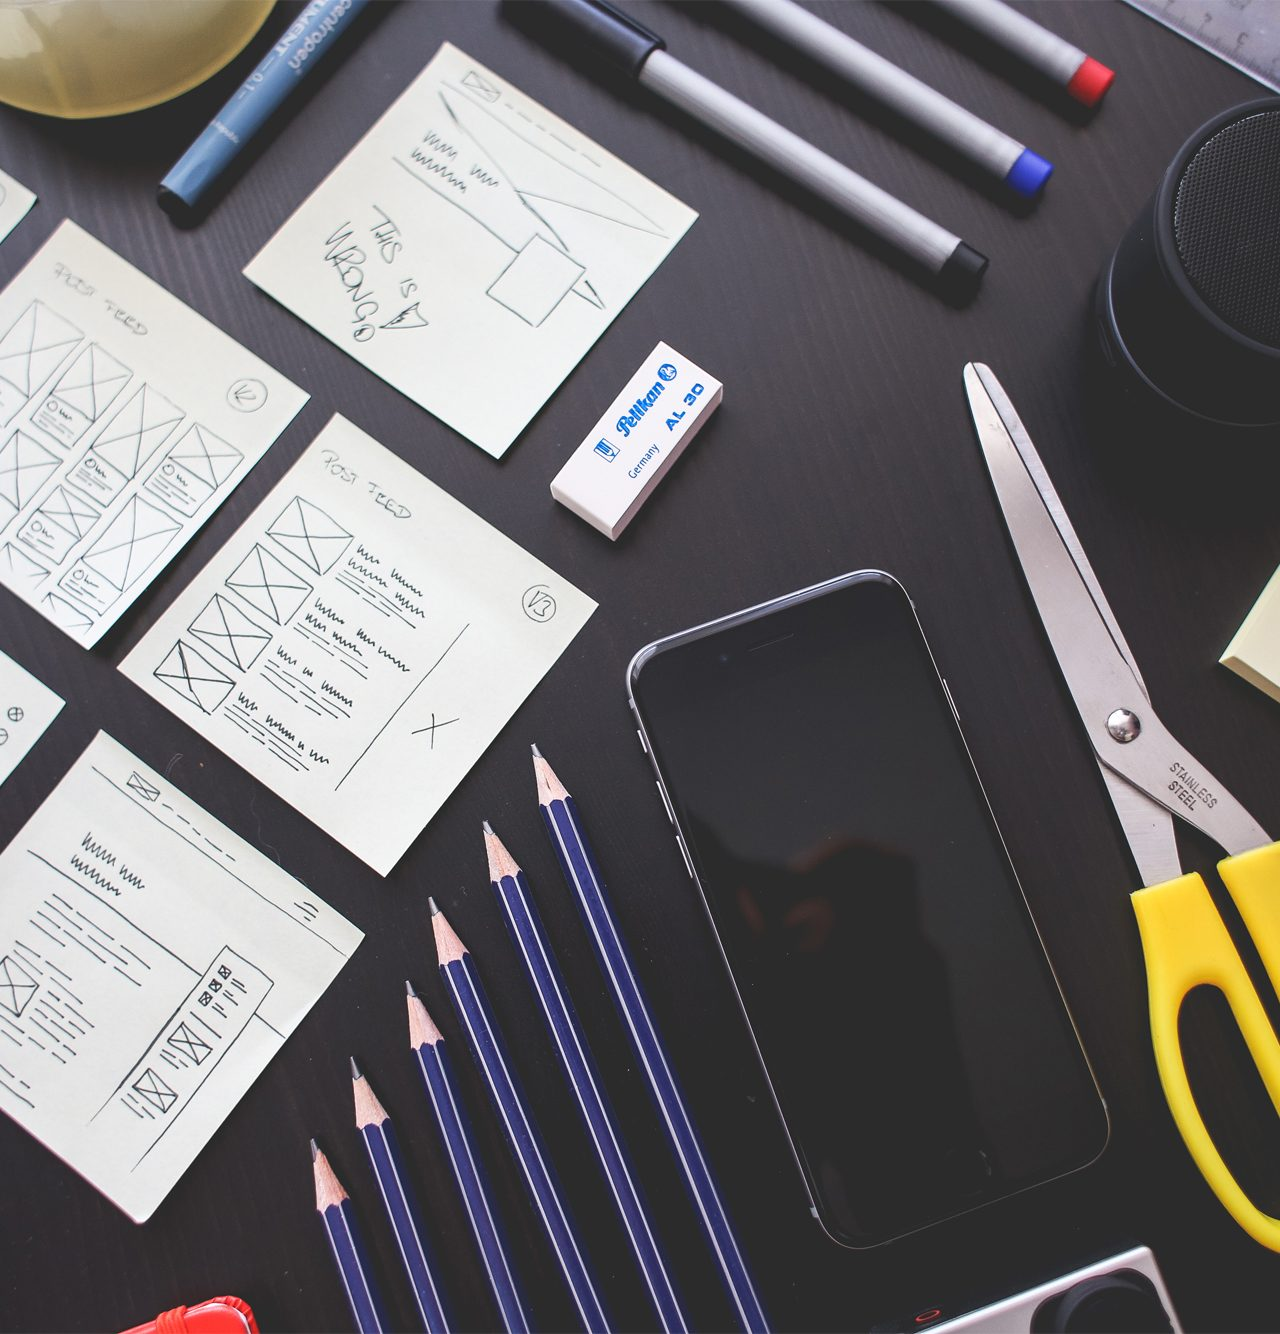 design wireframes laid out on a table with supplies